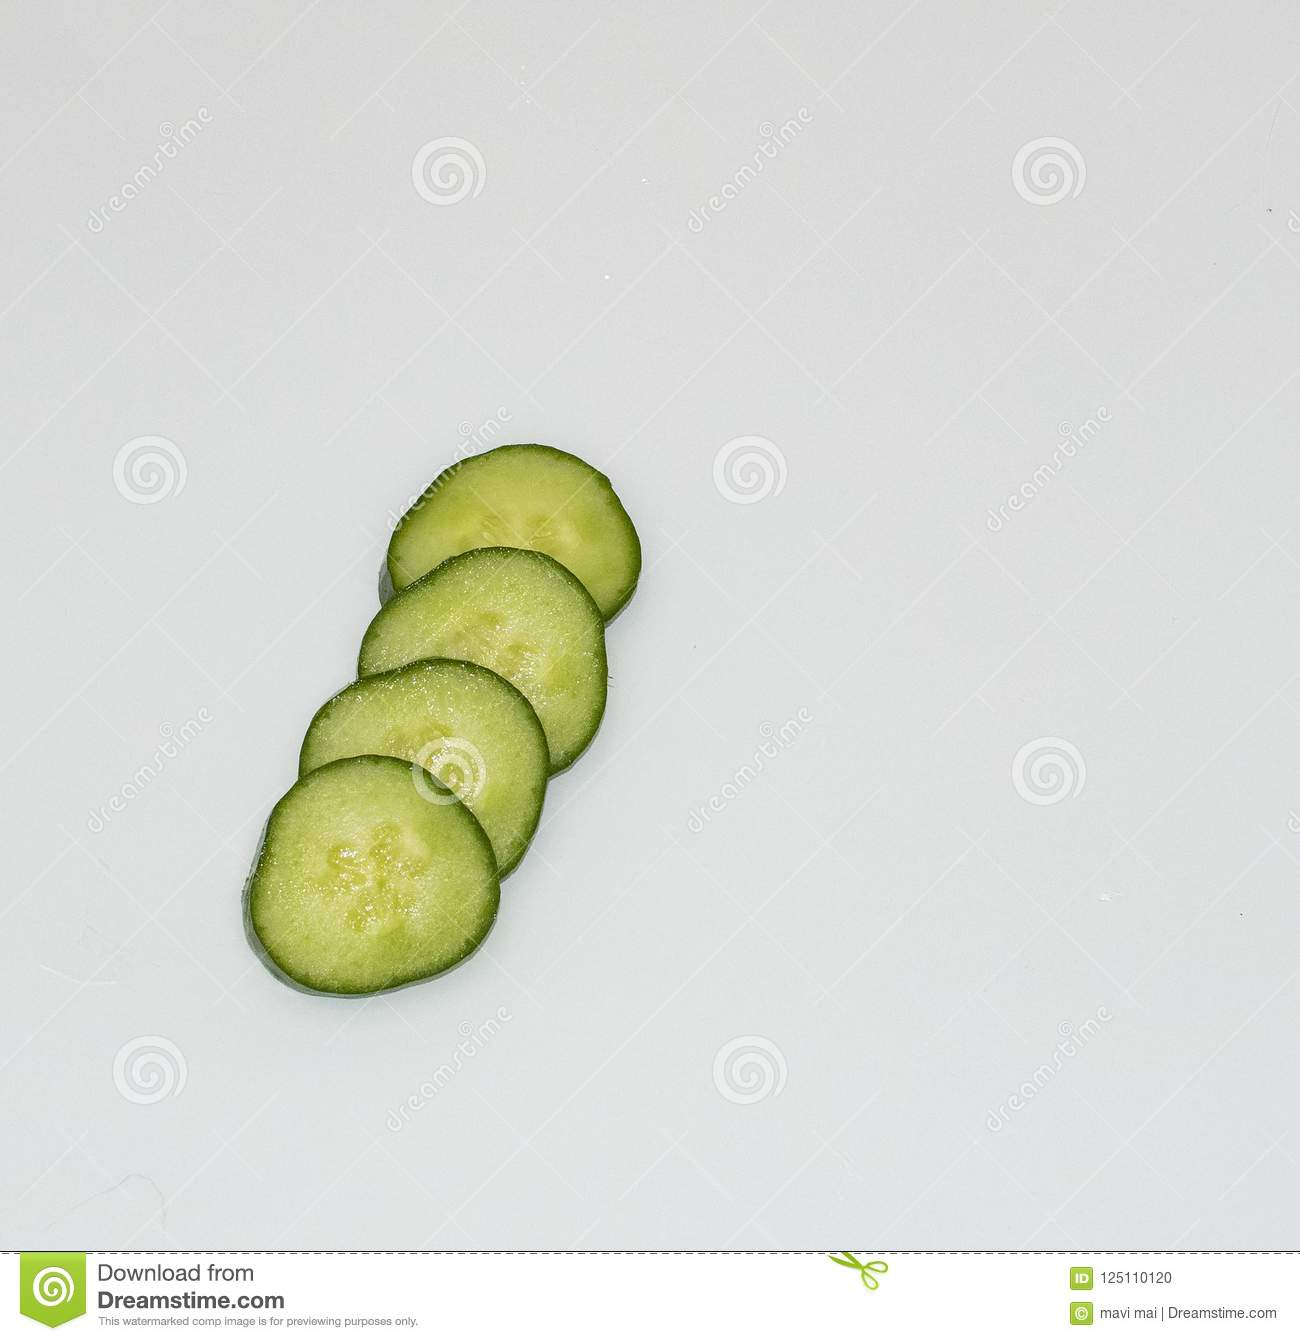 Cucumber and slices over white background